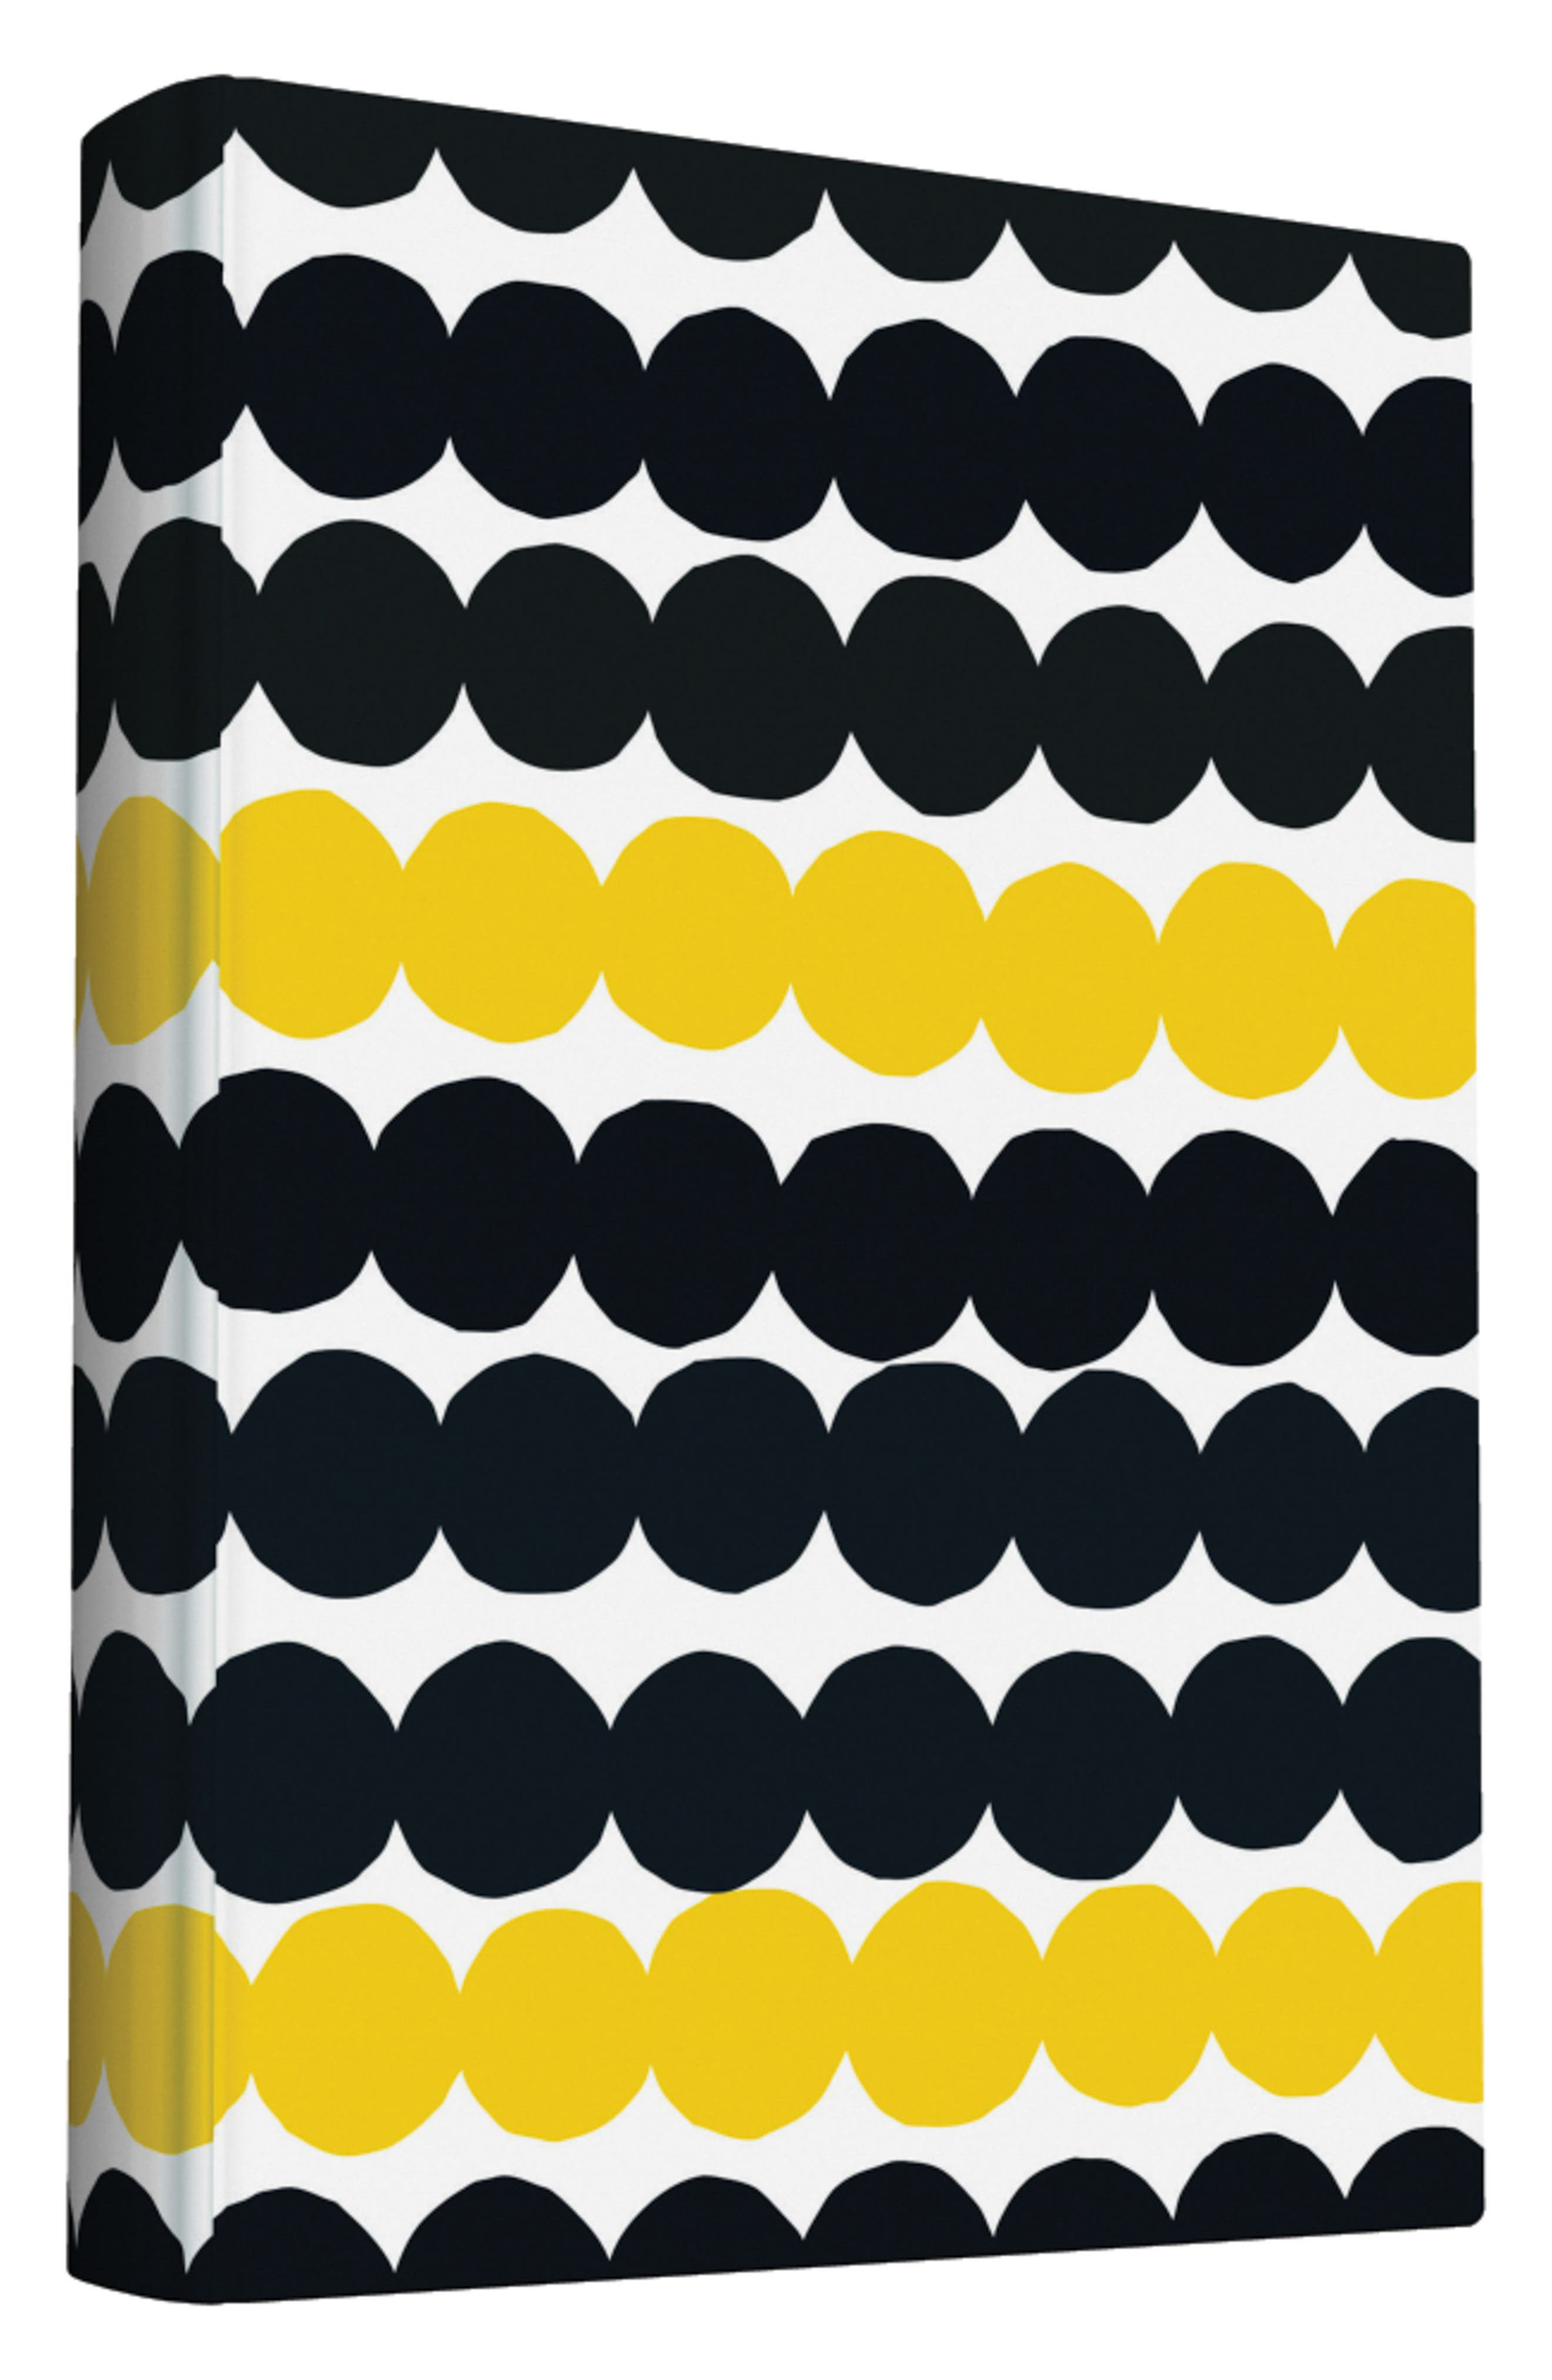 Marimekko Fabric Wrapped Journal,                             Alternate thumbnail 2, color,                             Multi